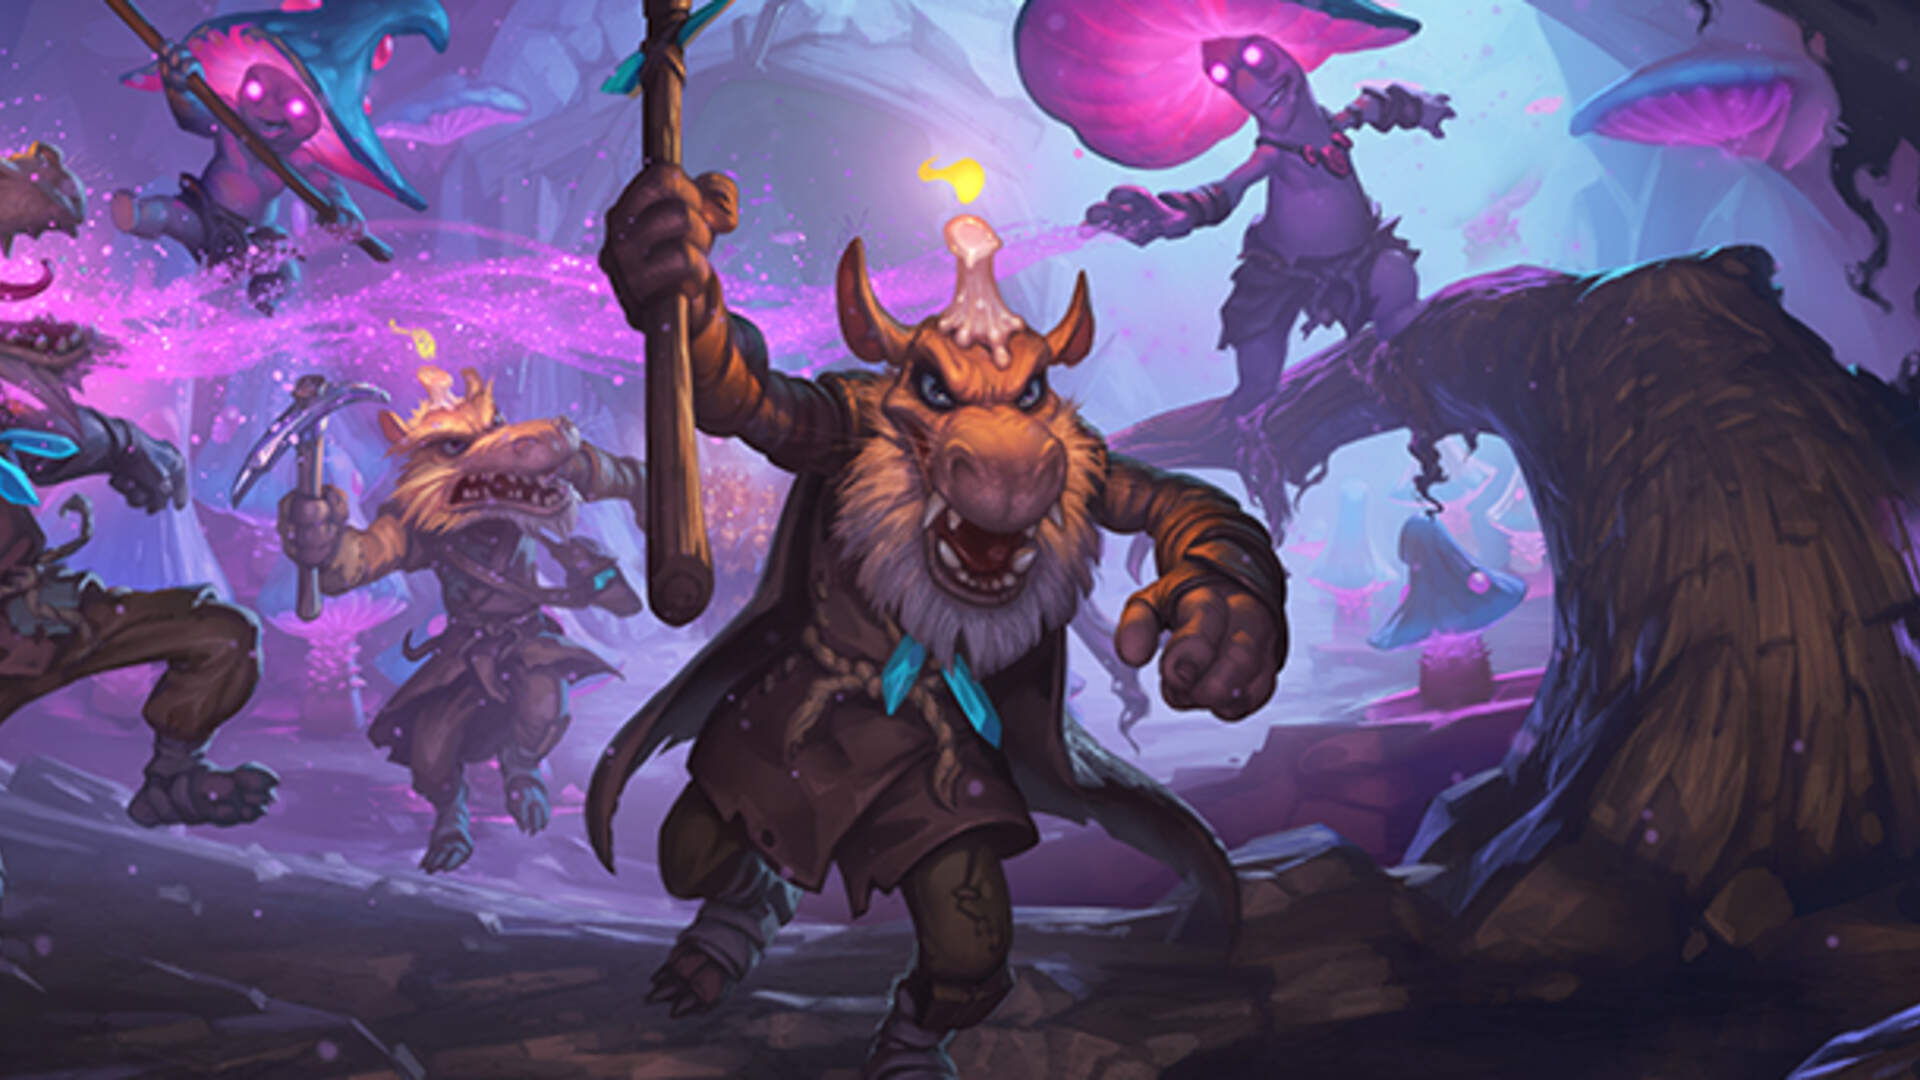 Hearthstone's New Expansion Delves Into Catacombs With Free Single-Player Content